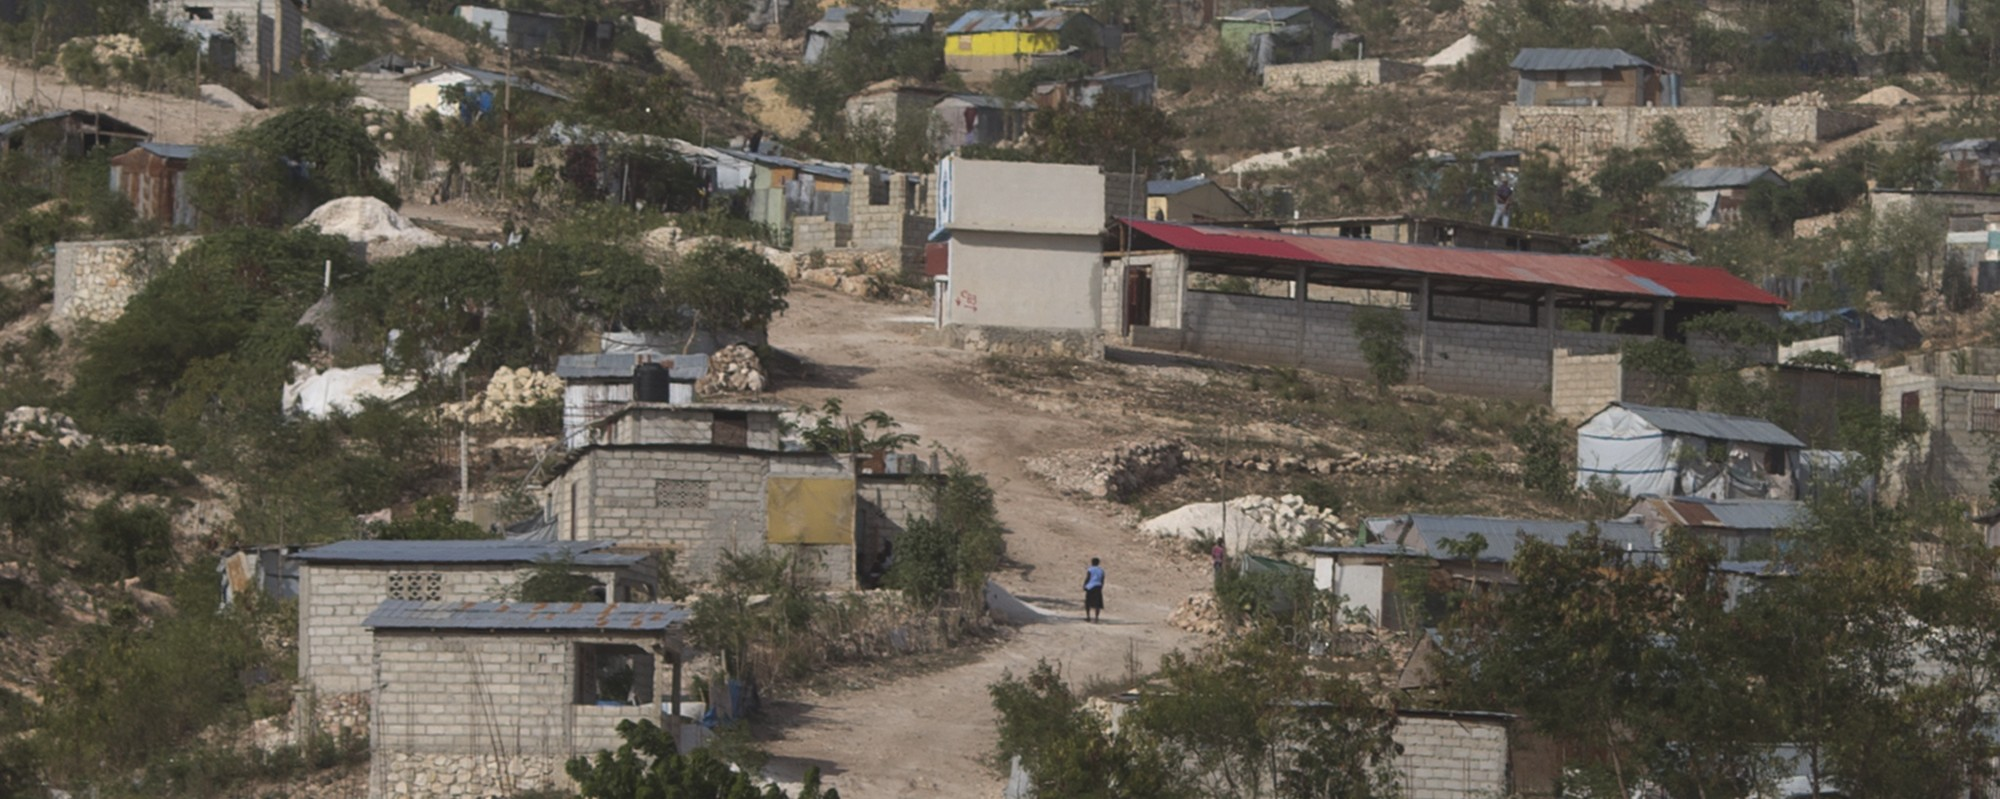 Following Outcry, the Red Cross Is Shifting Its Priorities in Haiti